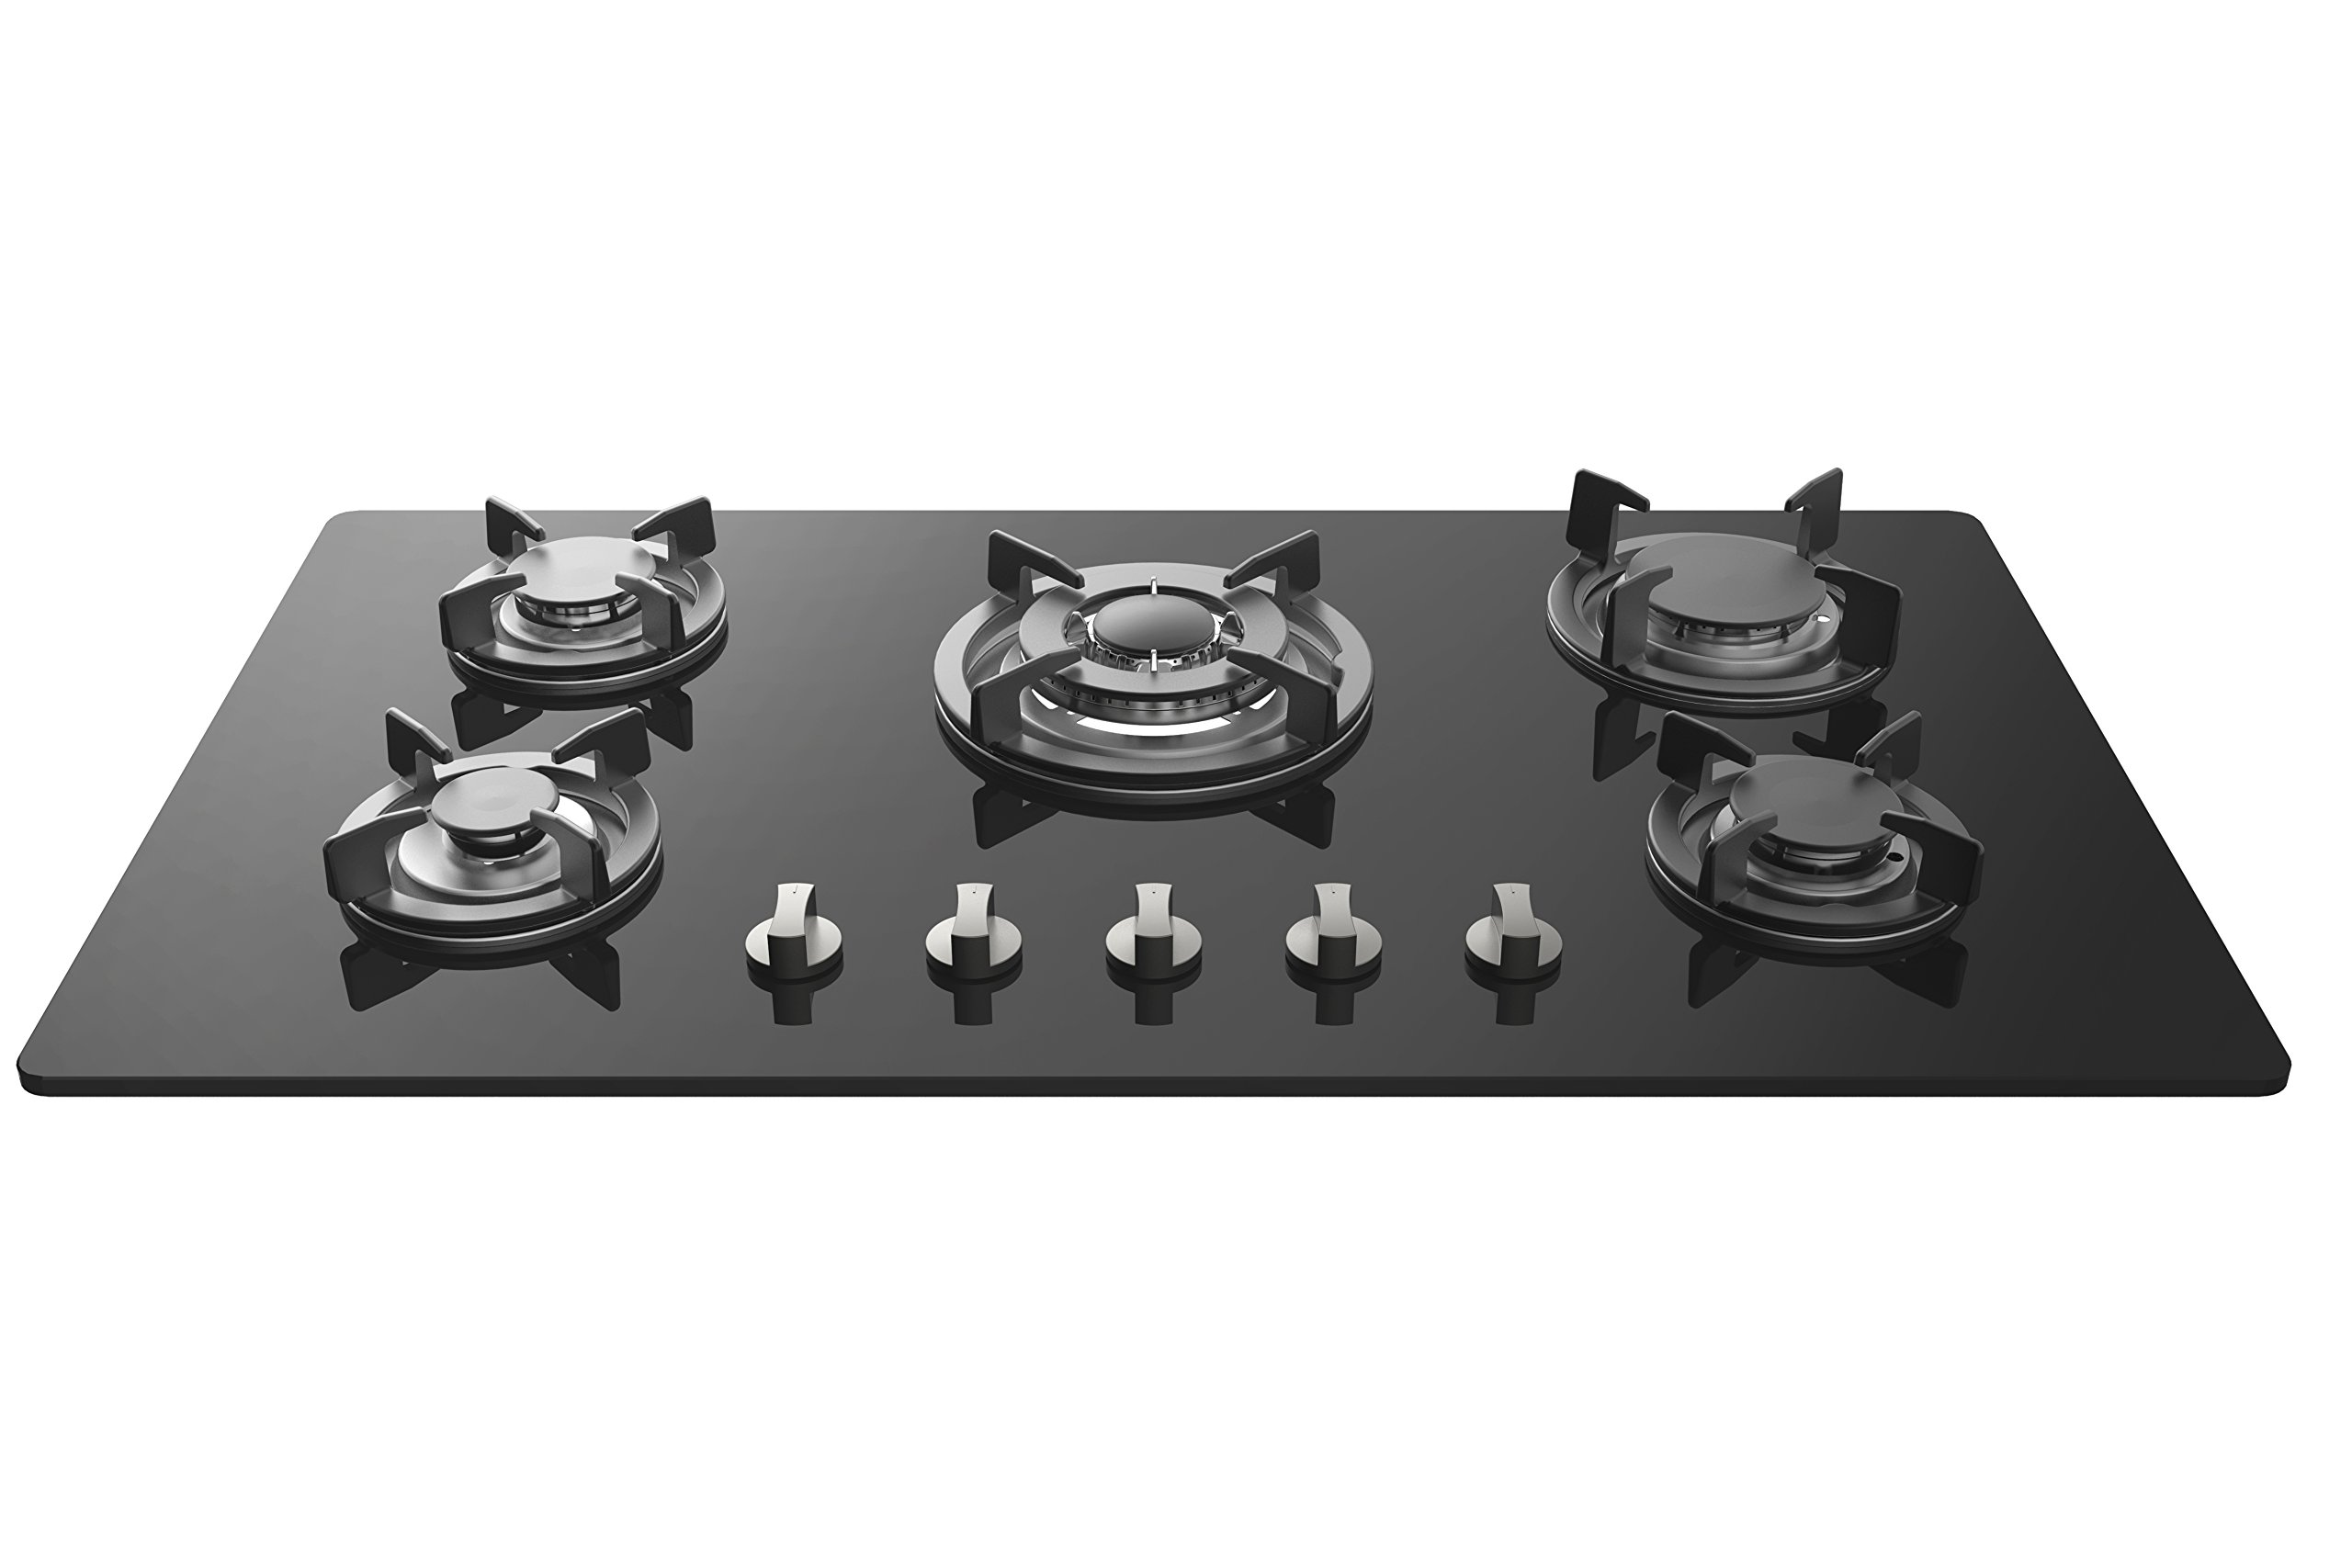 Empava 34'' Tempered Glass Built-in 5 Italy Sabaf Burners Stove Top Gas Cooktop EMPV-34GC5L90A by Empava (Image #1)